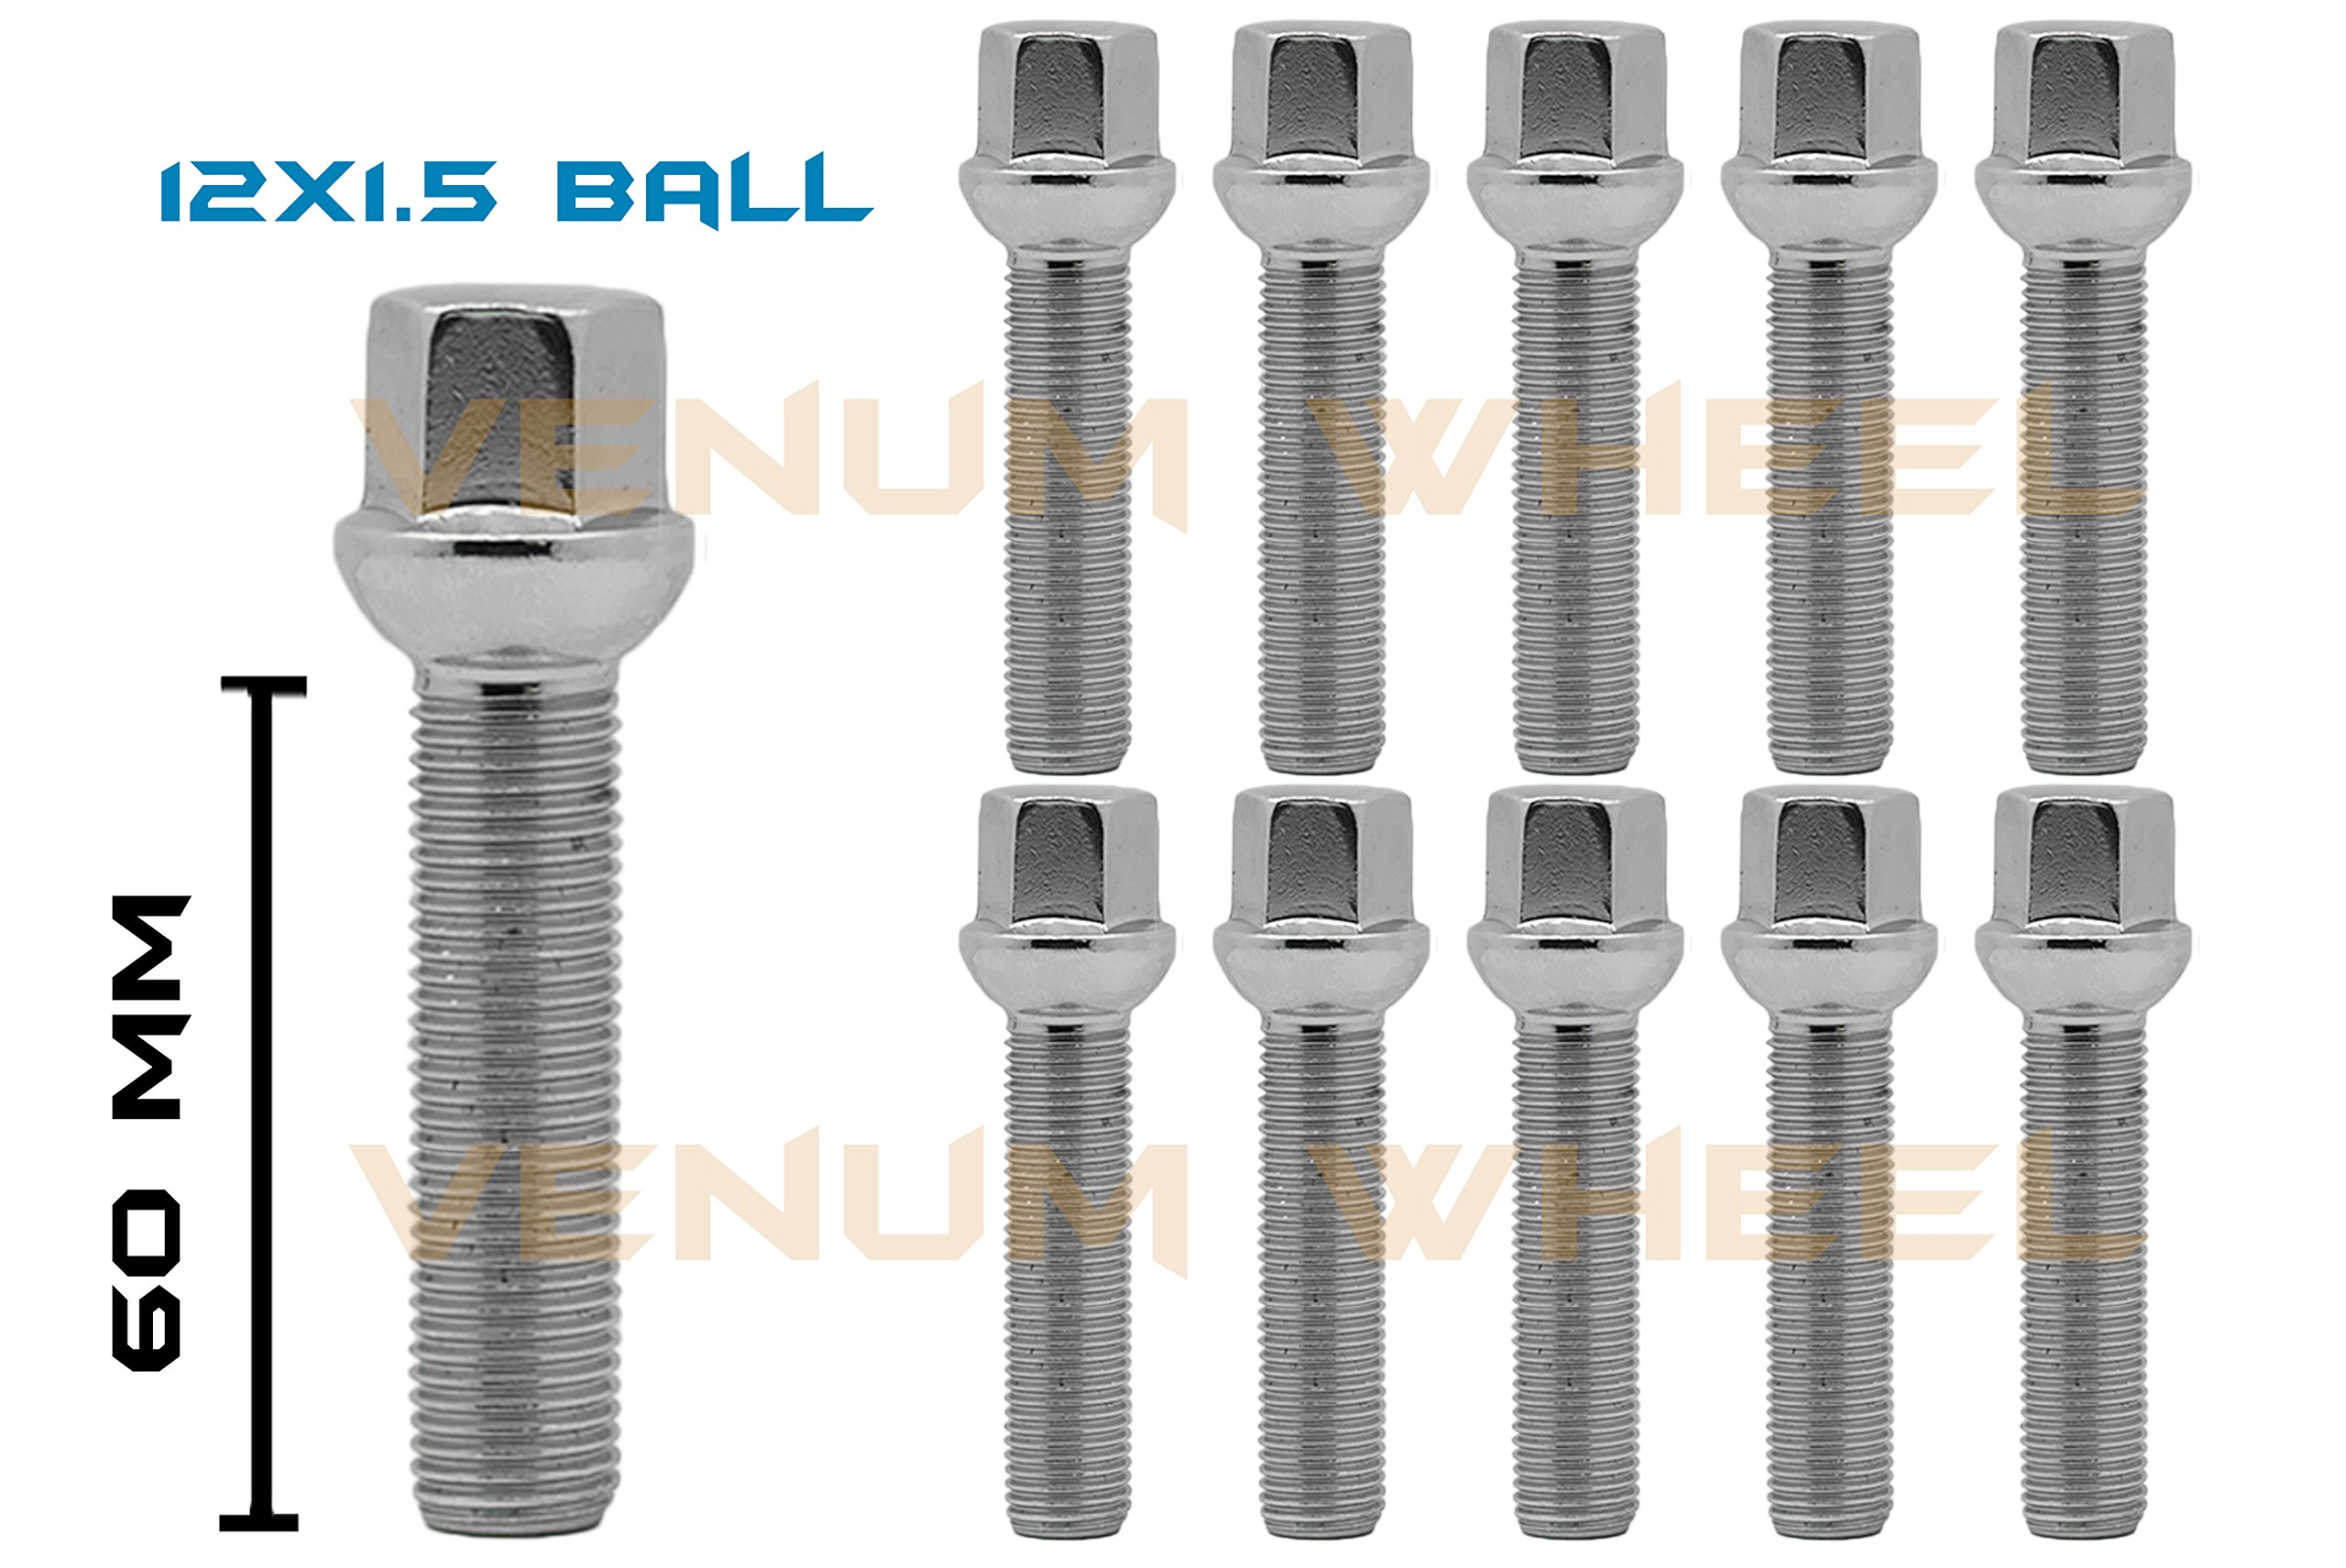 10 Pc Chrome 12x1.5 Ball Seat Lug Bolts 60mm Shank Extended Length 17mm Hex Fits Mercedes Benz